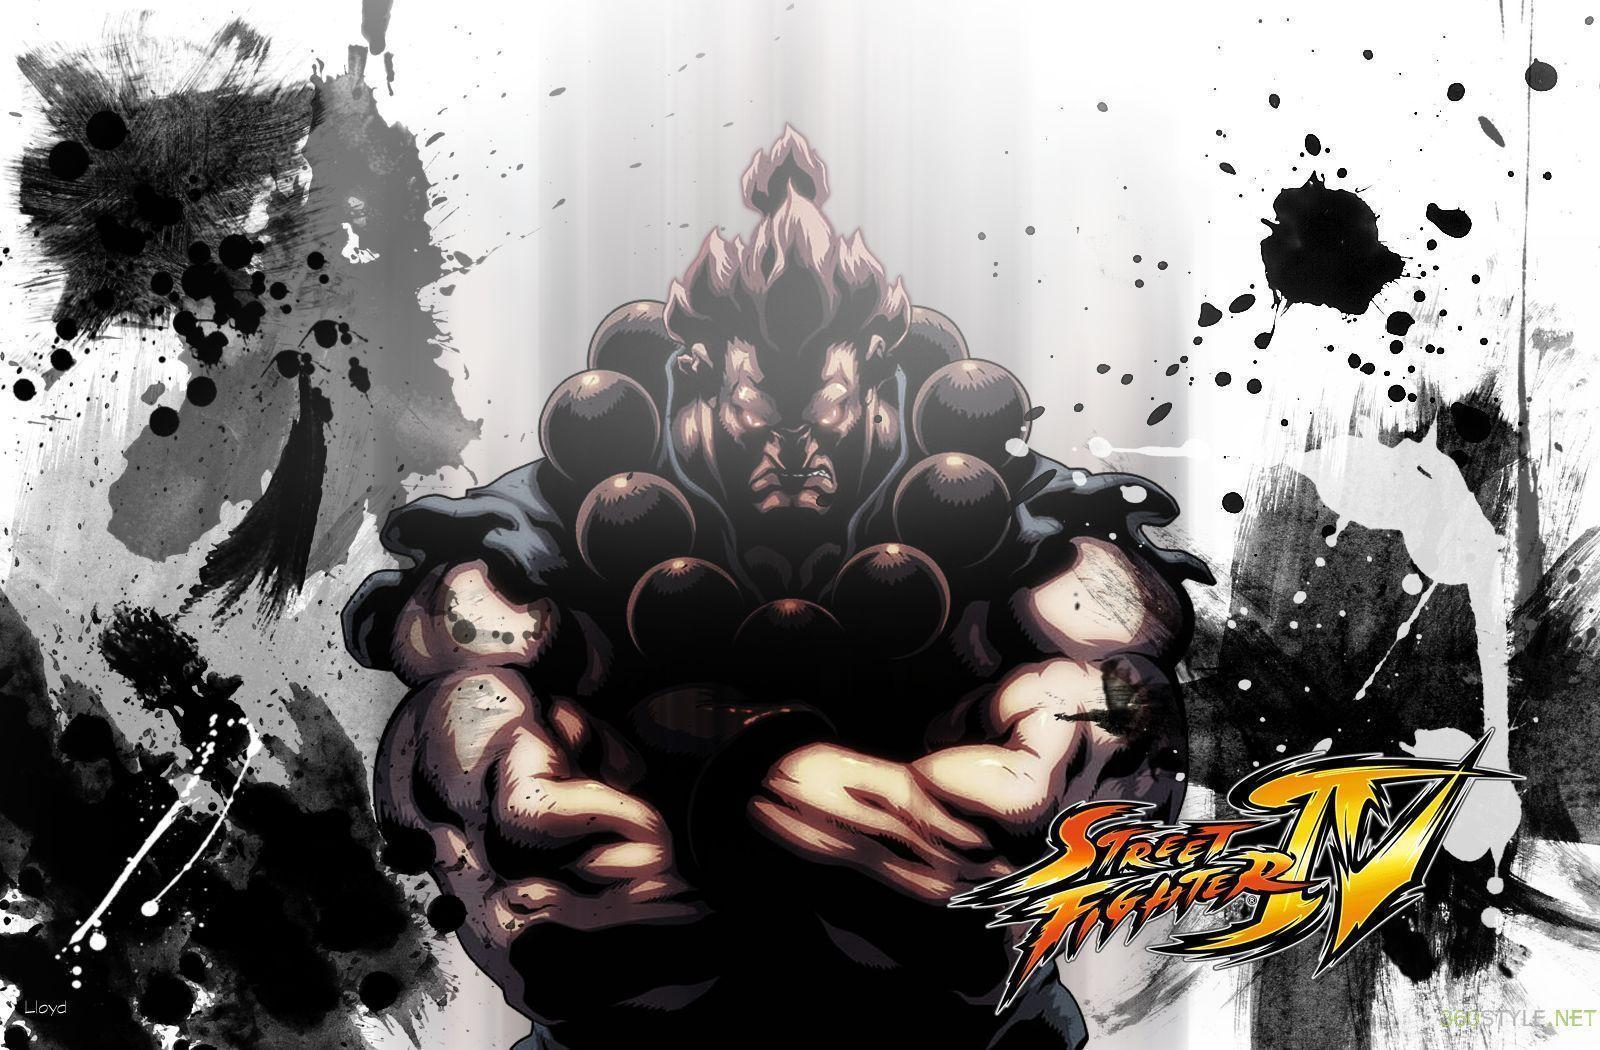 shadowloo street fighter wallpaper - photo #21